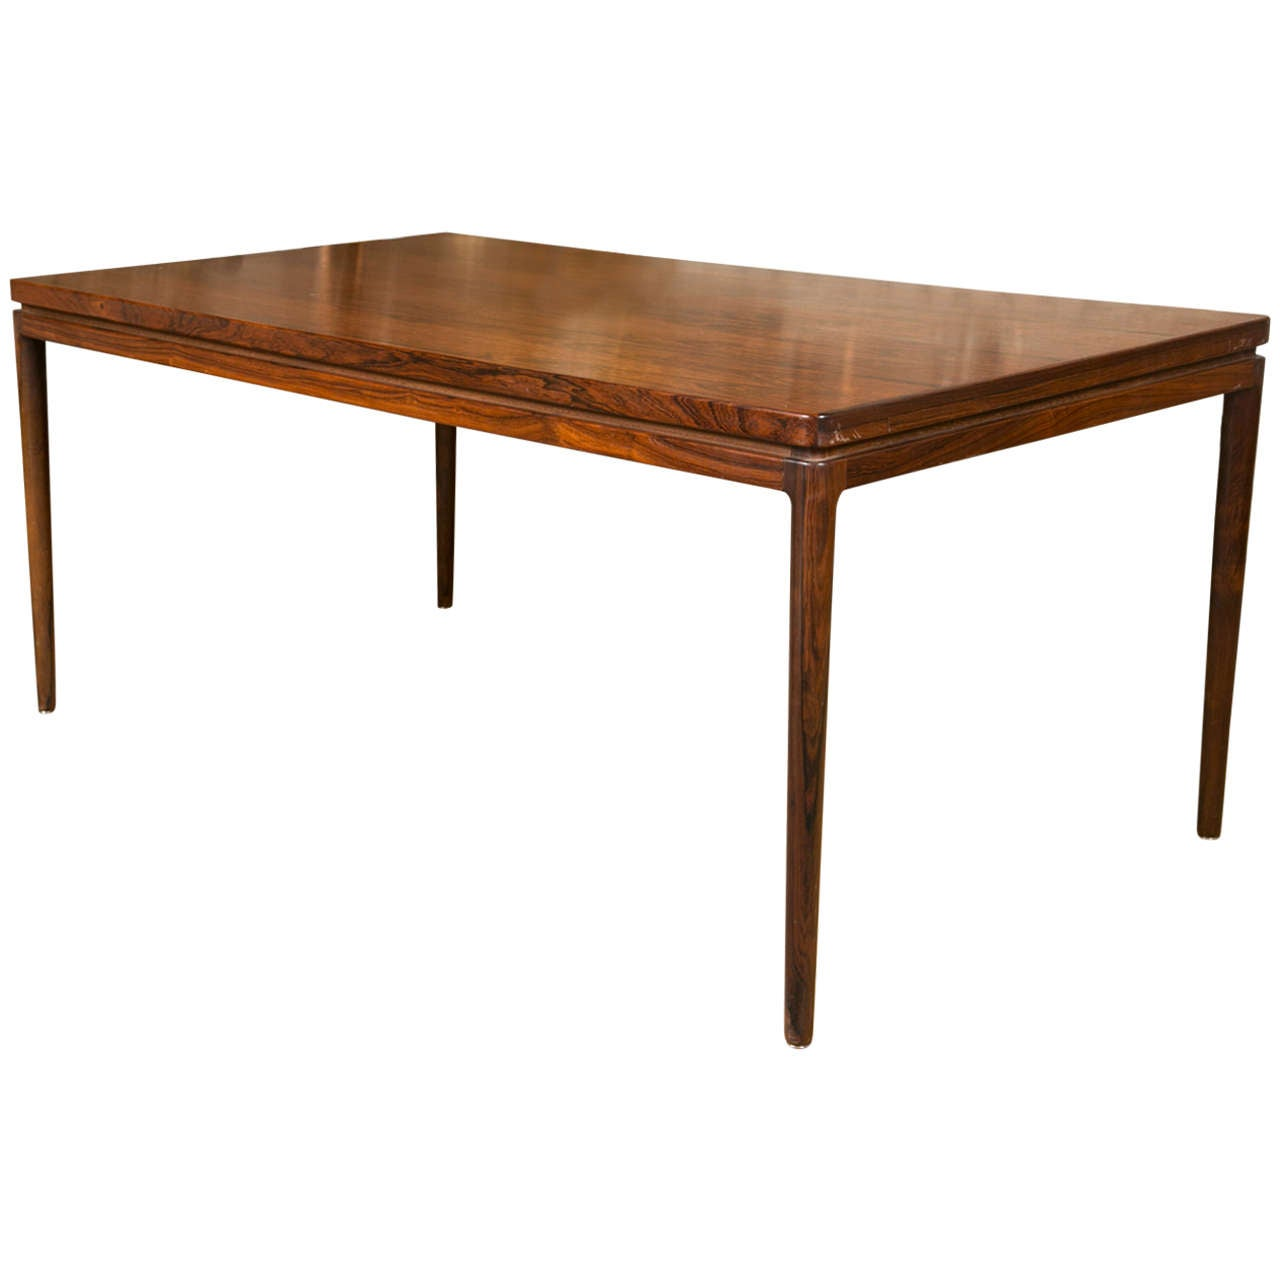 Mid Century Modern Danish Dining Table at 1stdibs : X from www.1stdibs.com size 1280 x 1280 jpeg 48kB